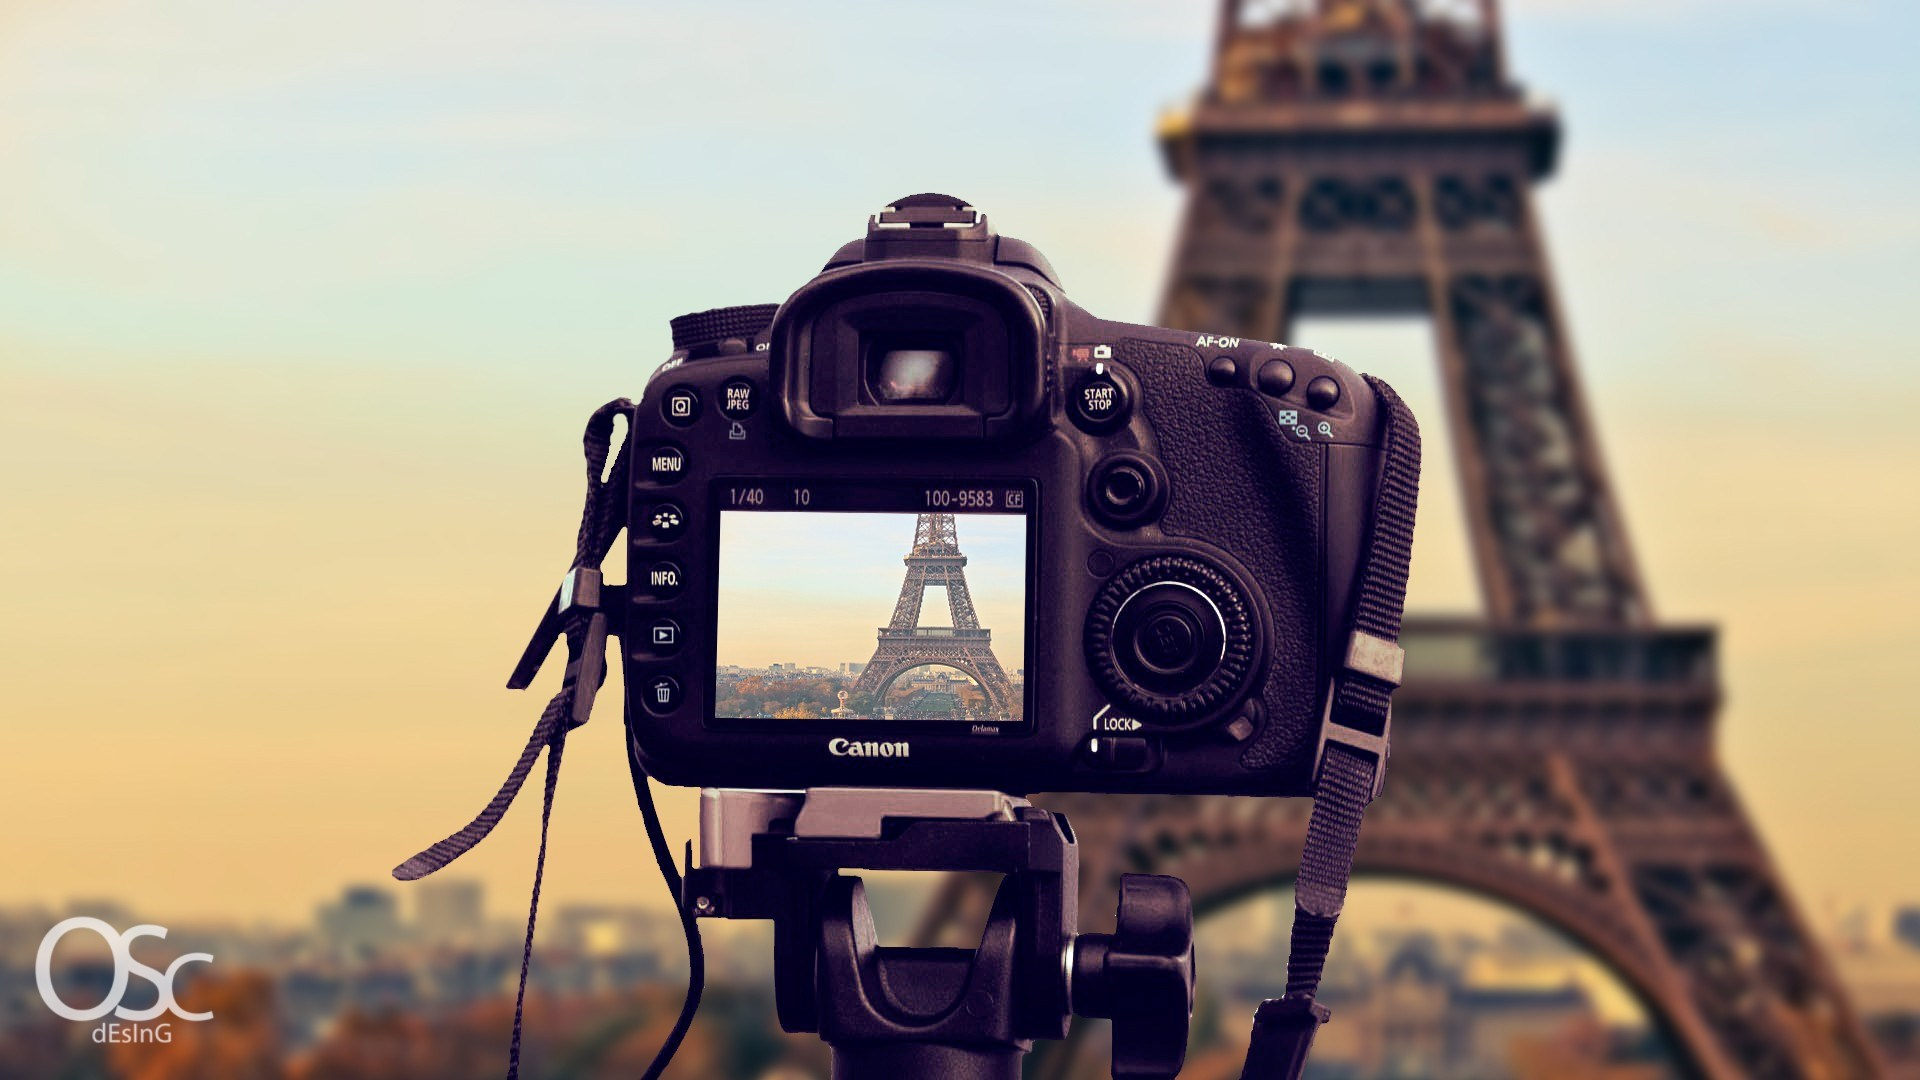 Camera wallpapers high quality download free - Foto in camera ...